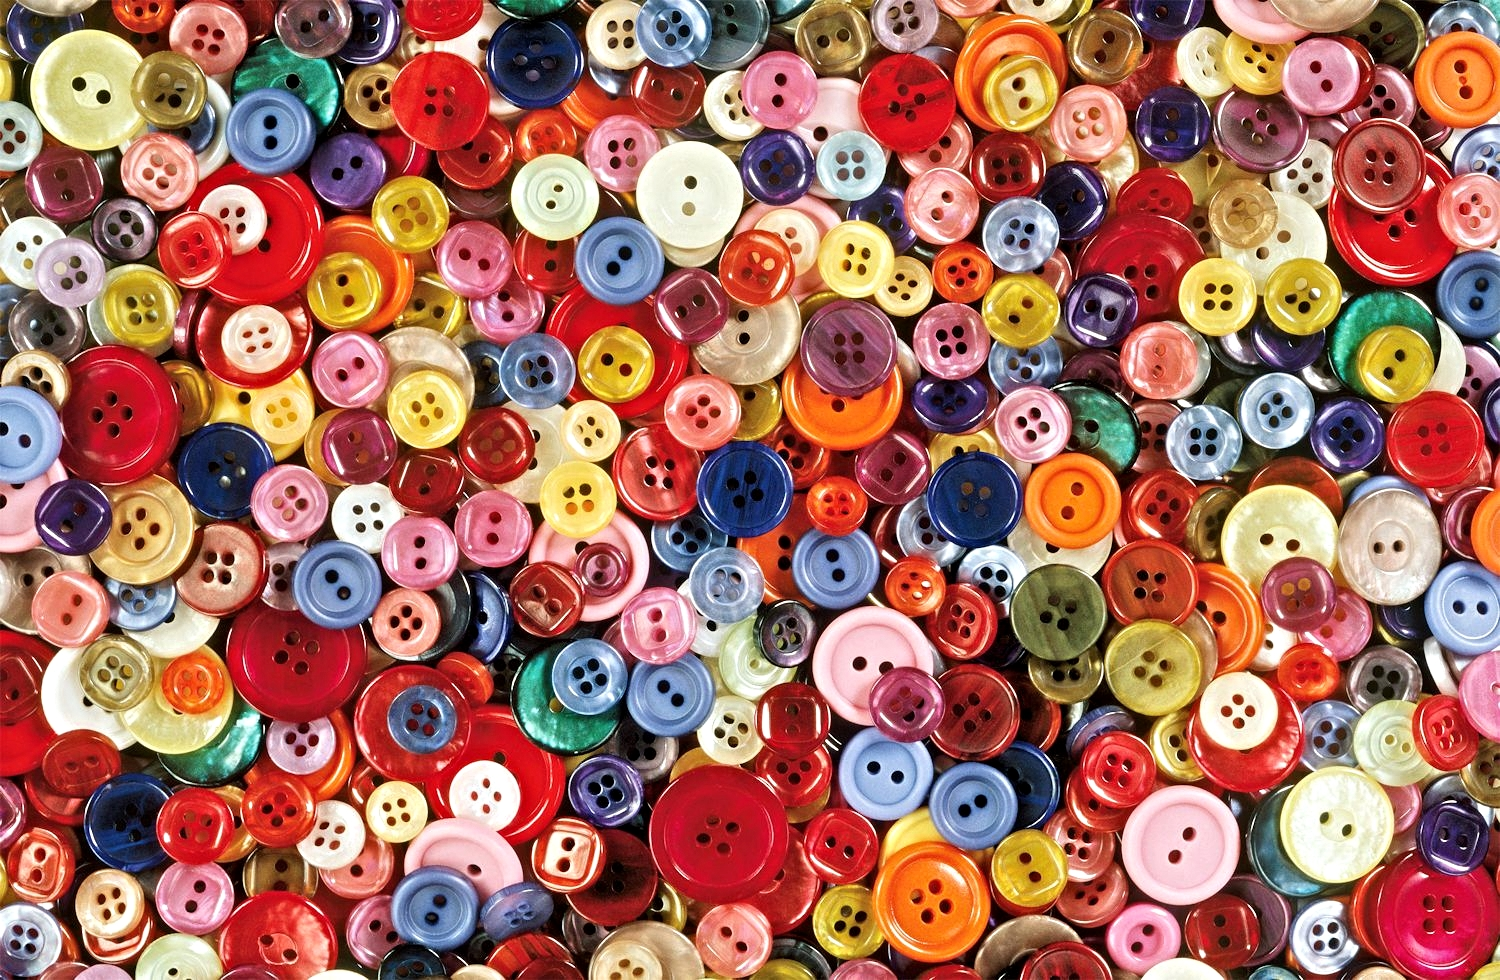 Buttons Everyday Objects Jigsaw Puzzle